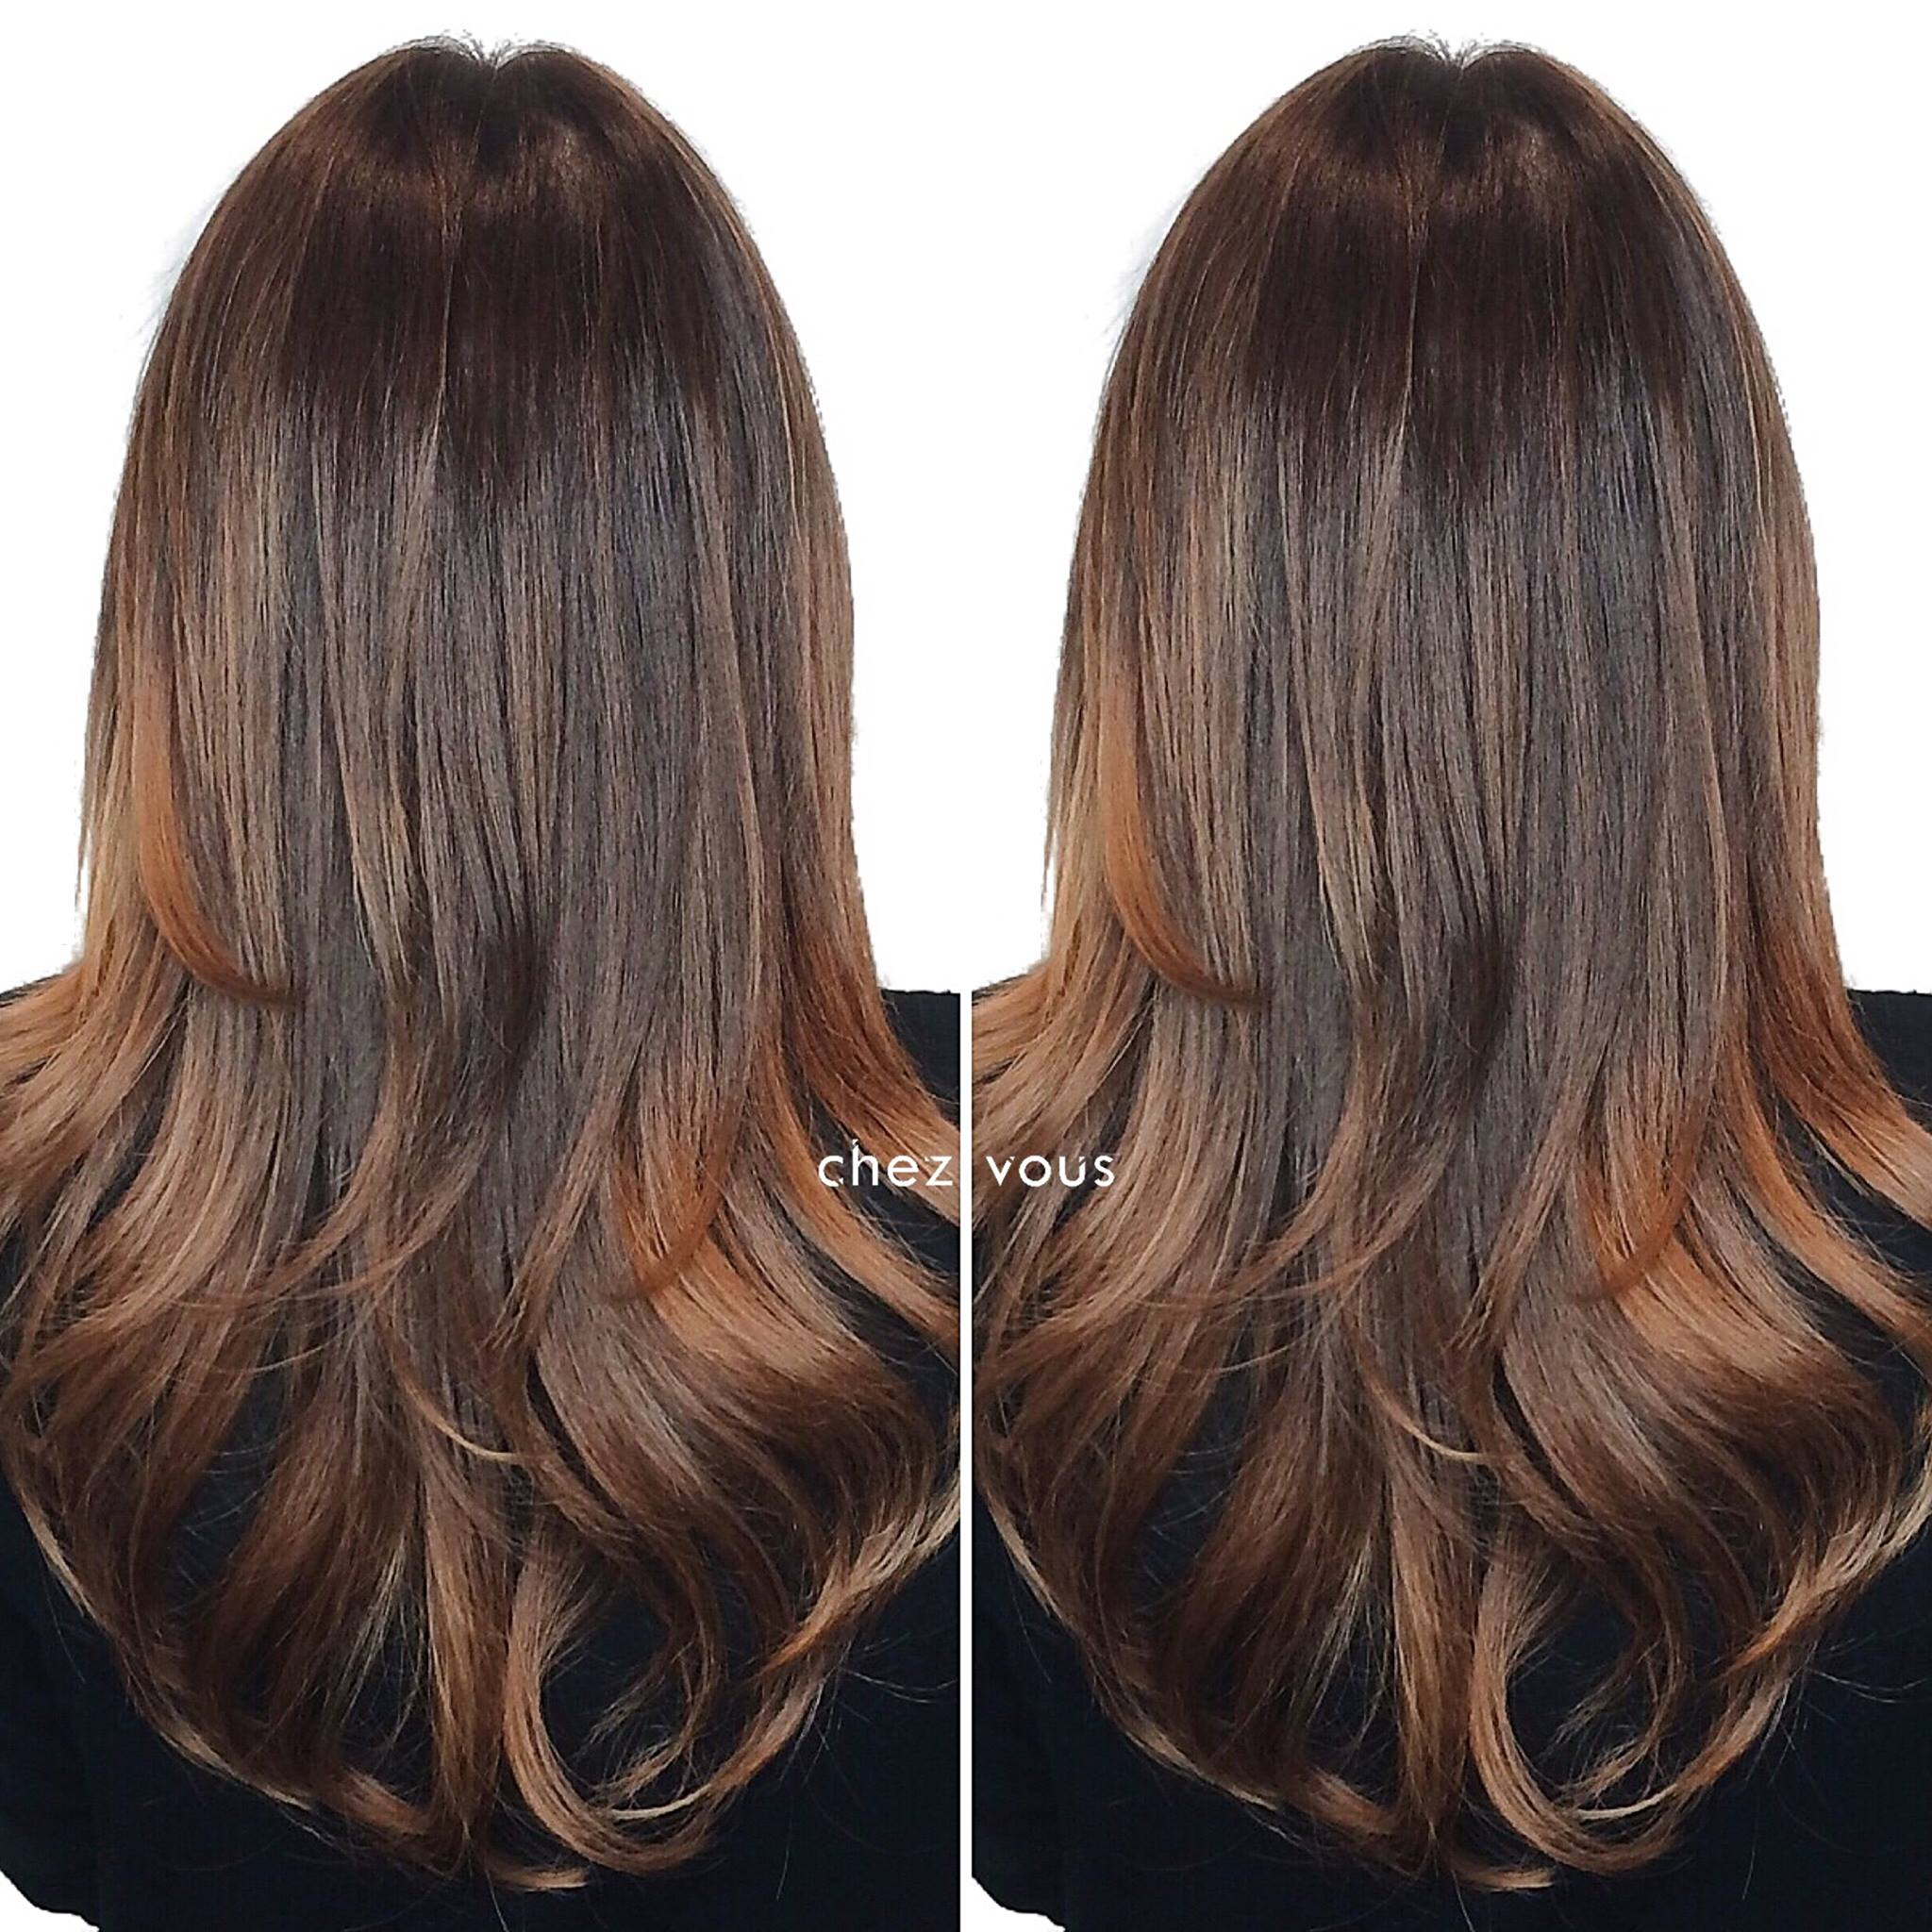 Reddish Brown Highlights Hair Colour by Chez Vous